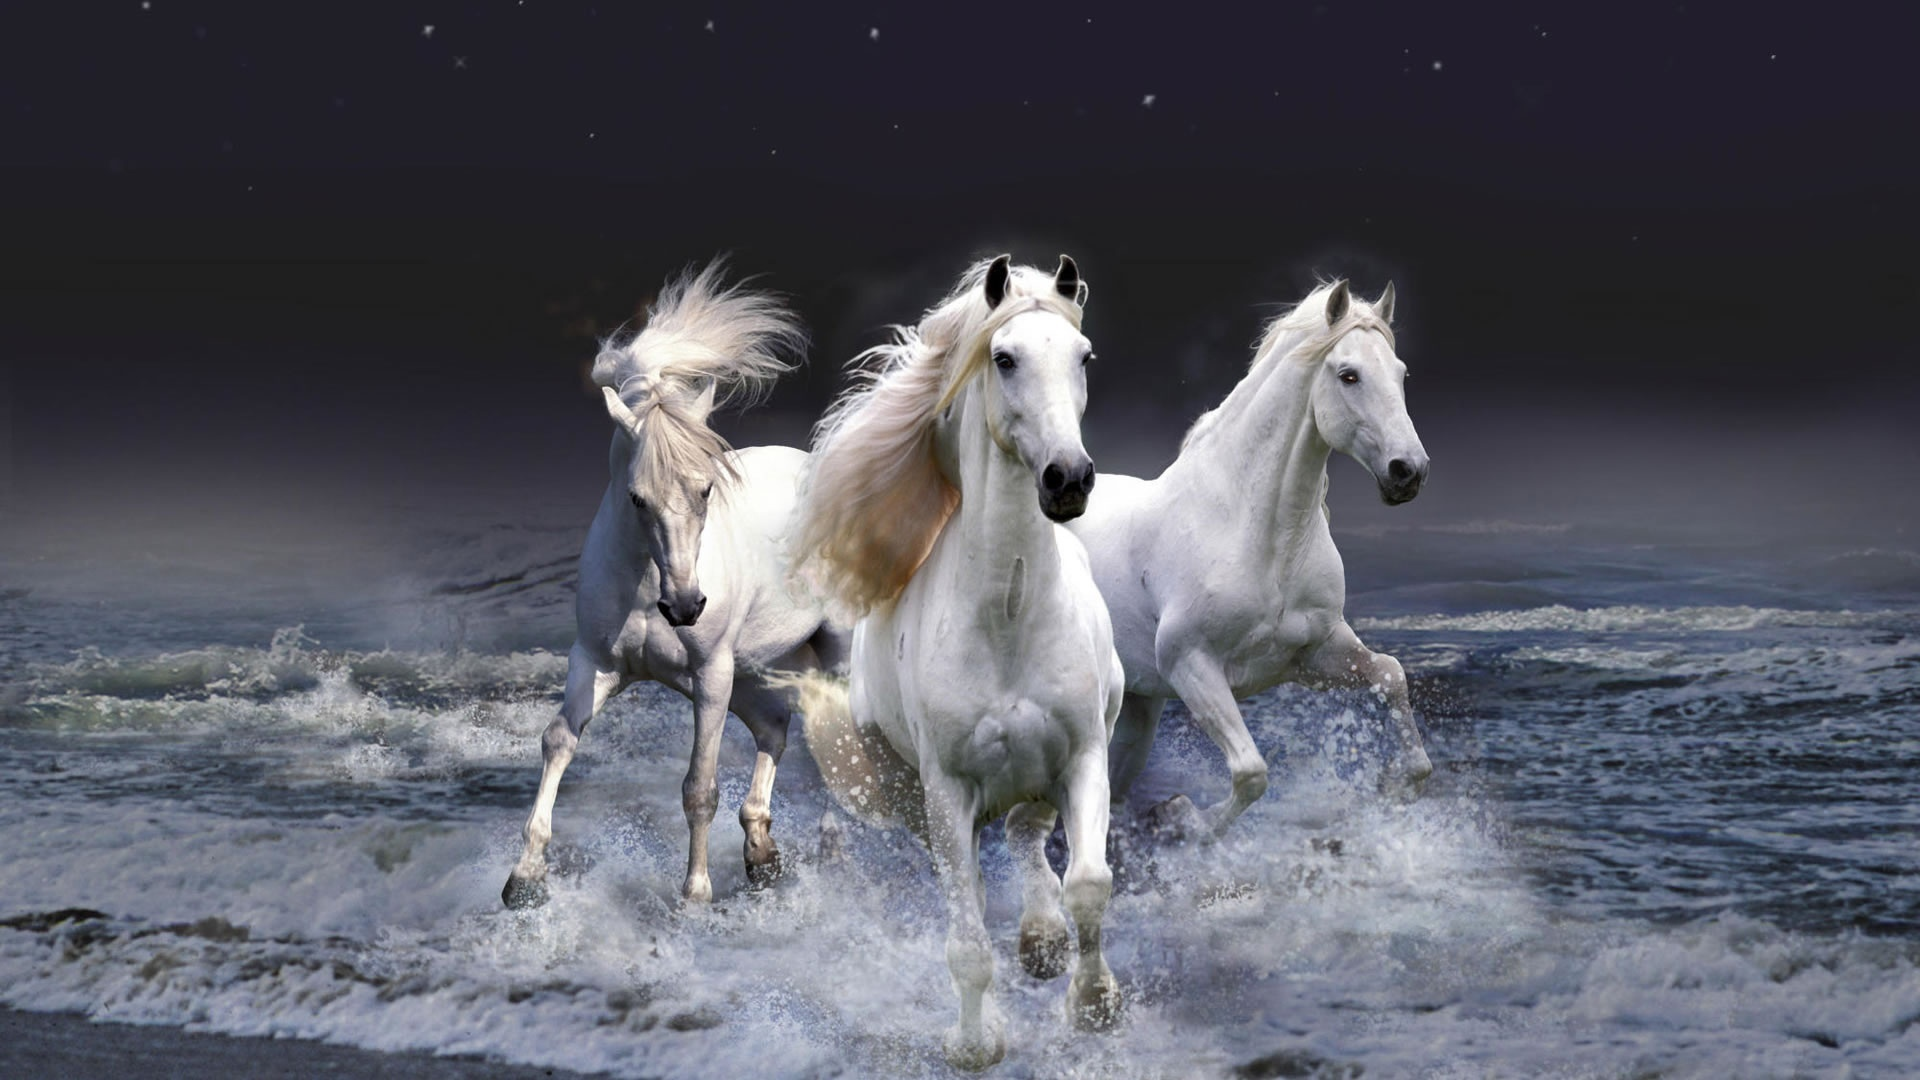 25072 download wallpaper Animals, Horses, Sea, Waves screensavers and pictures for free